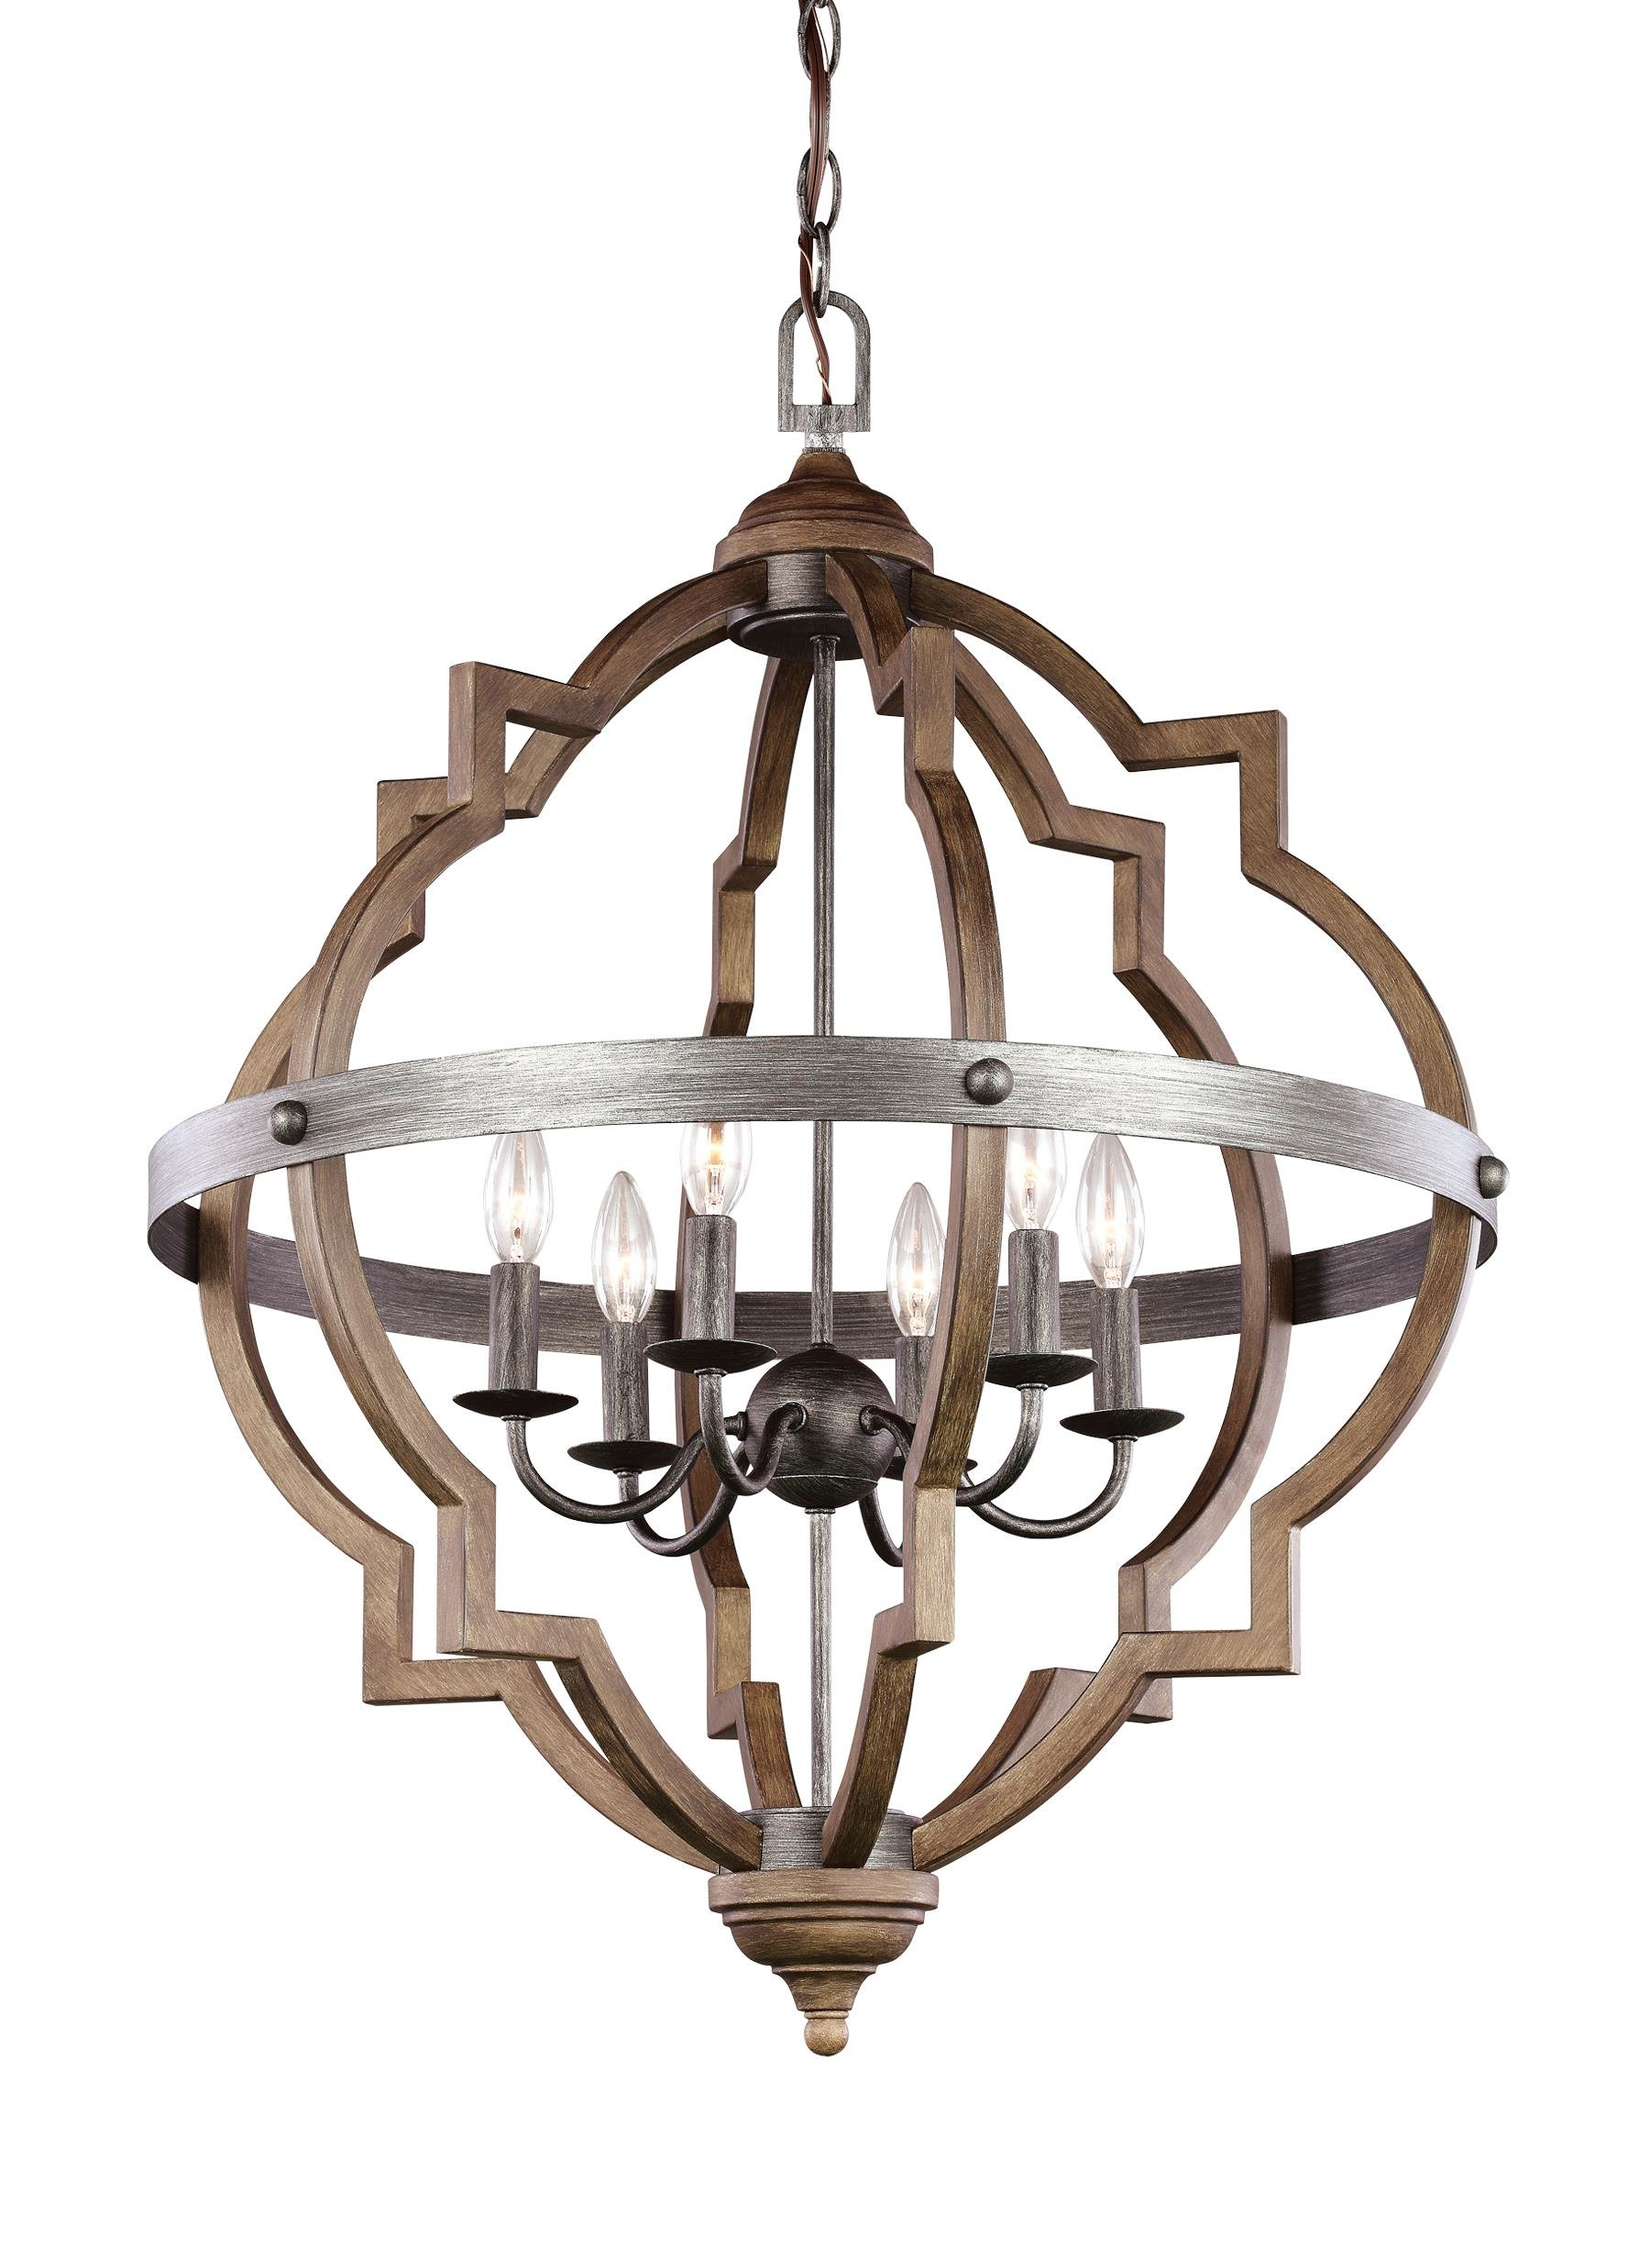 Bennington 6 Light Candle Style Chandelier Within Popular Bennington 4 Light Candle Style Chandeliers (Gallery 6 of 20)